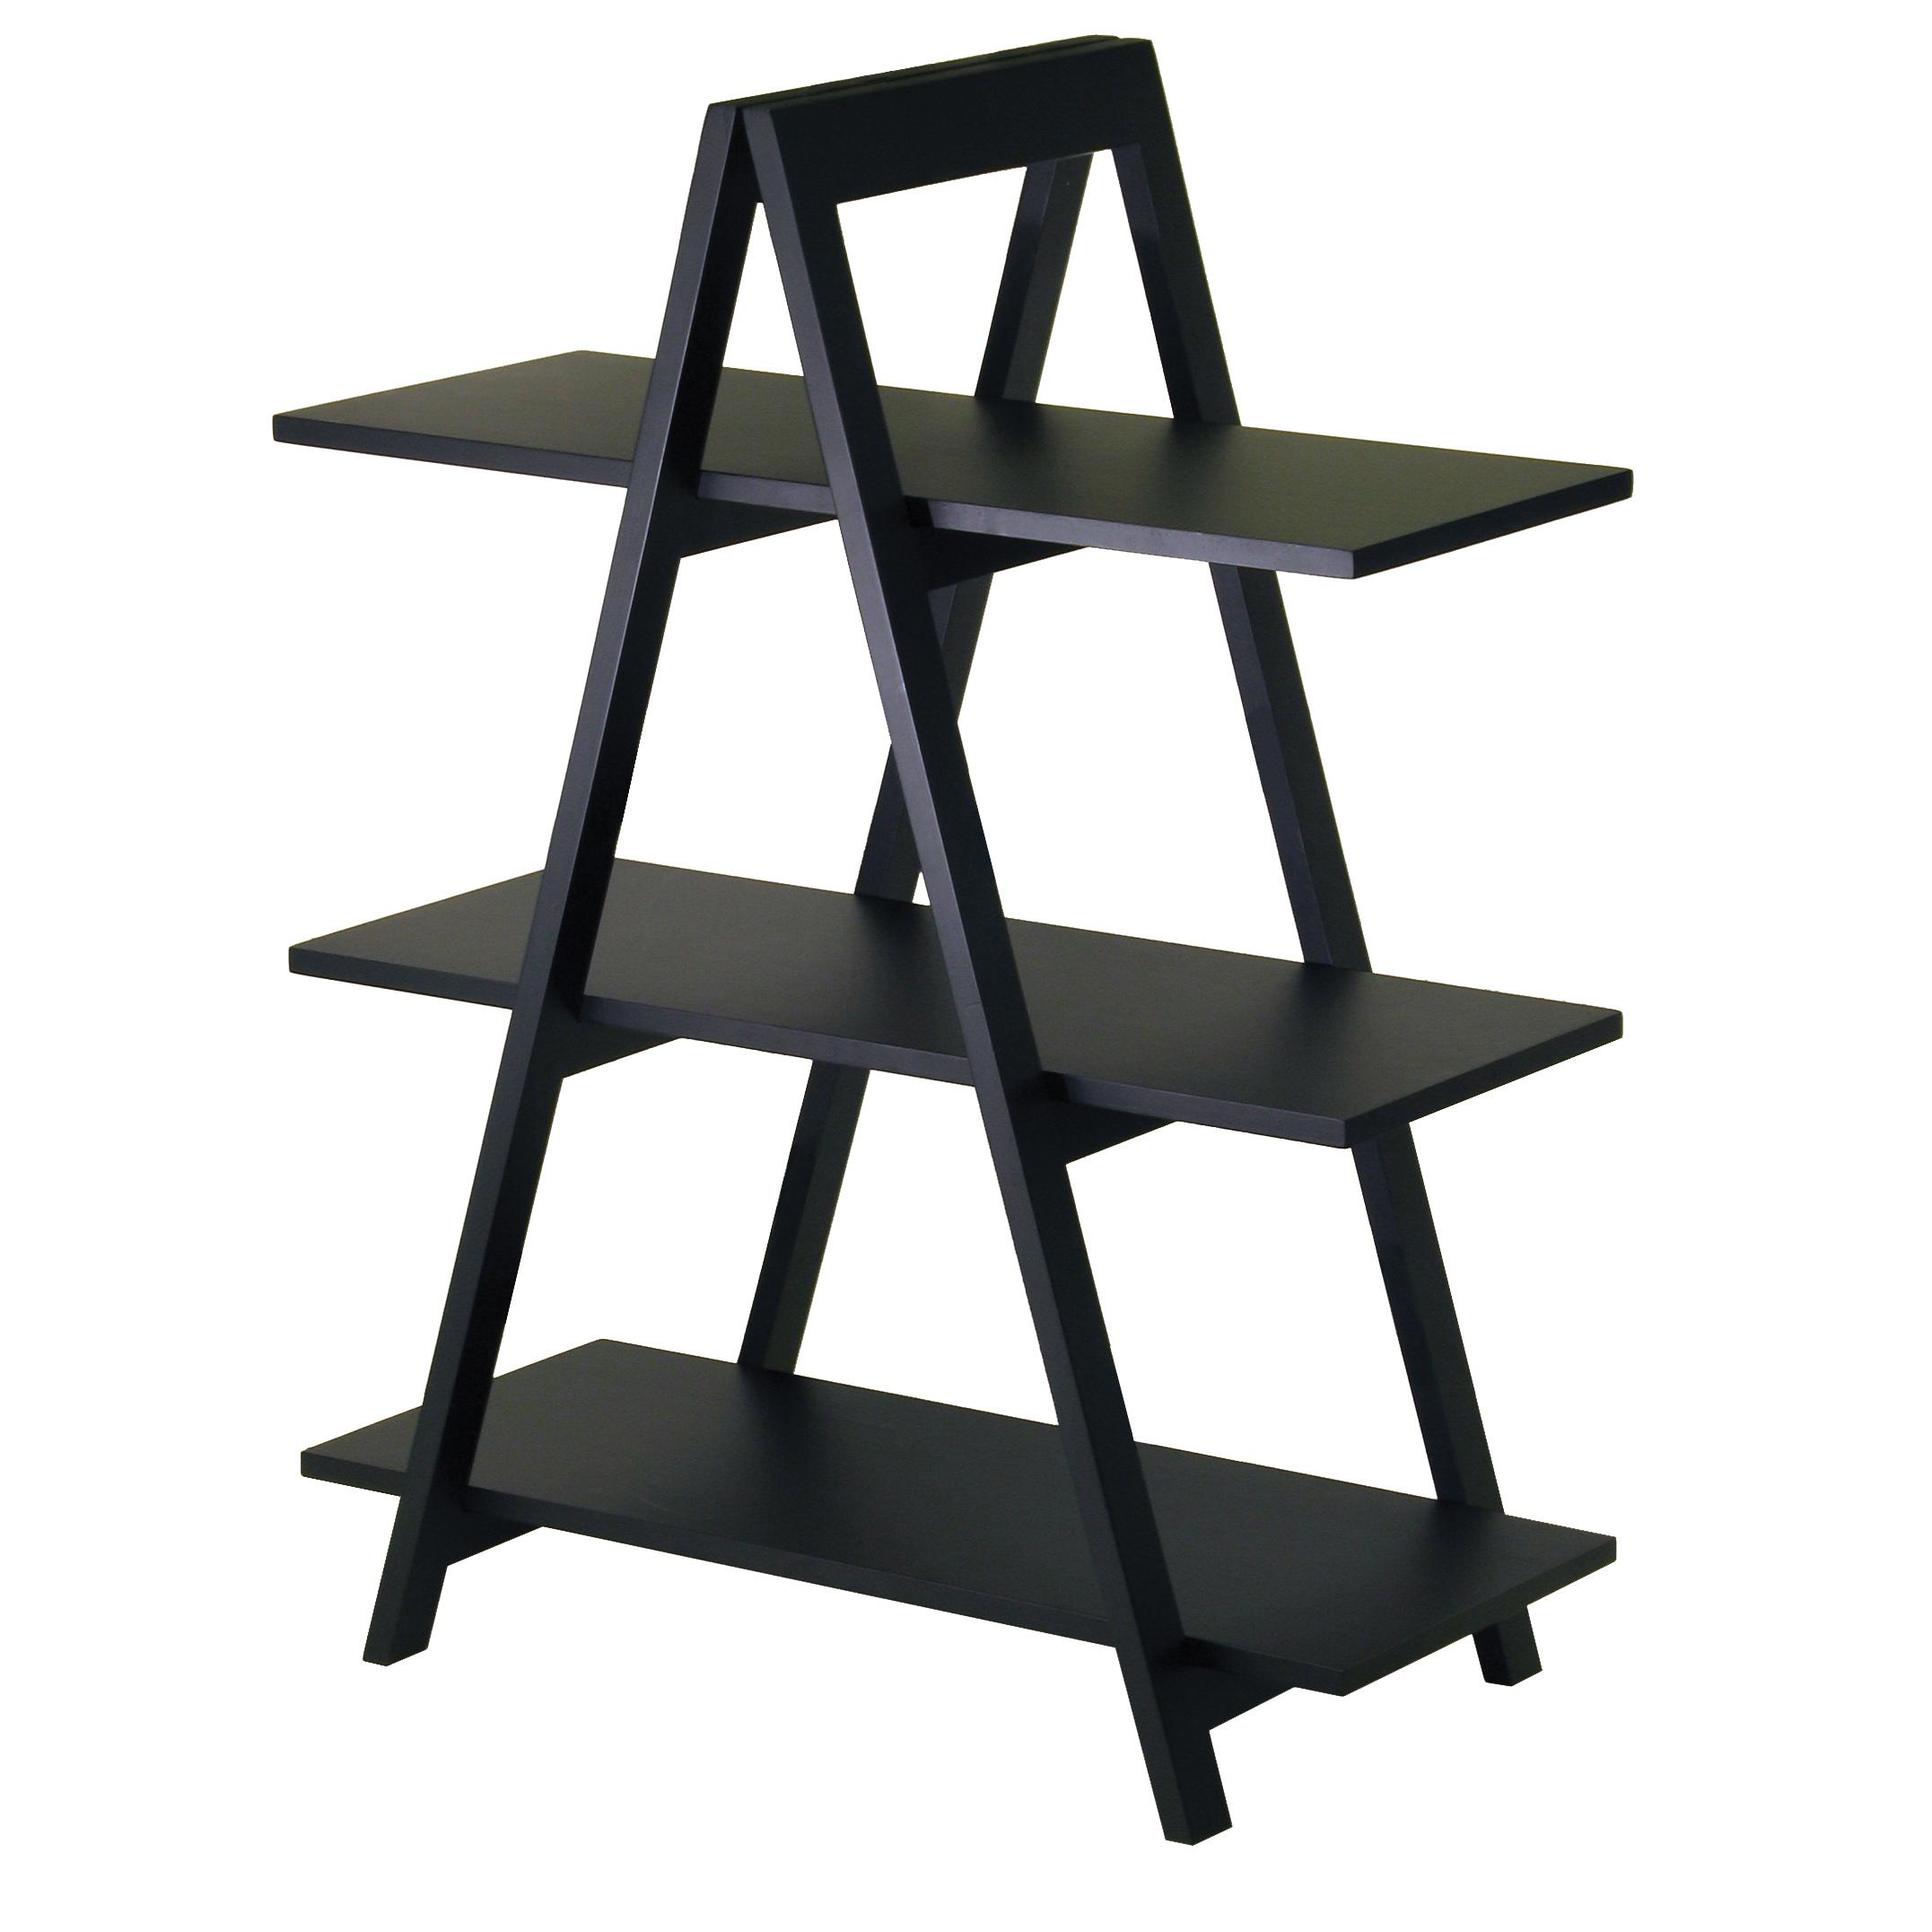 Amazon.com: Winsome Wood 3-Tier A-Frame Shelf, Black: Kitchen & Dining